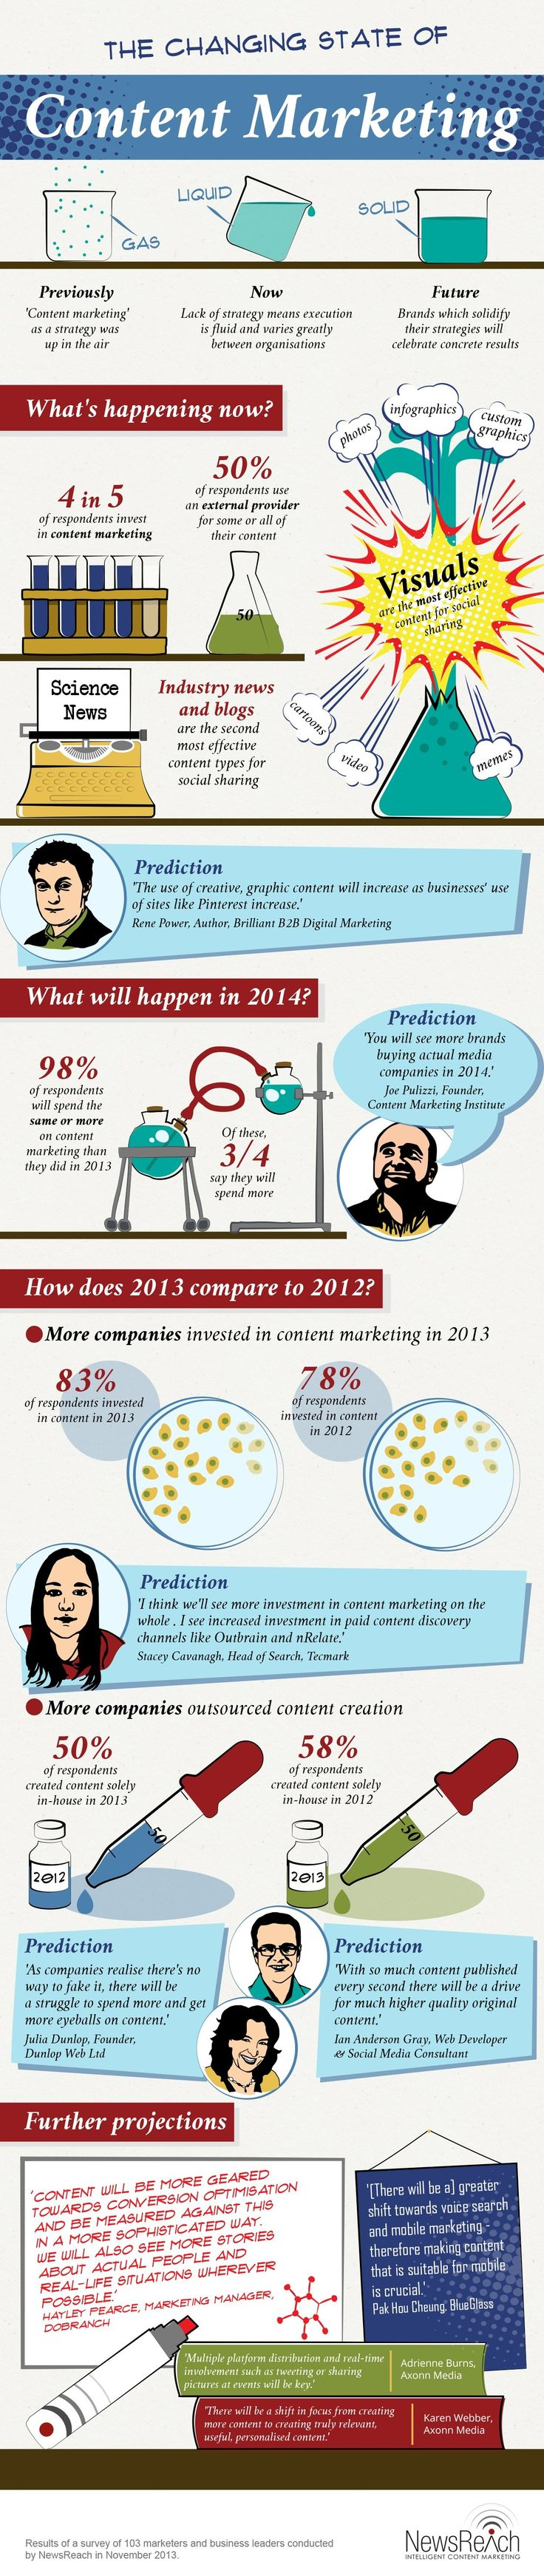 The Changing State of Content Marketing [INFOGRAPHIC] | #SeriouslySocial